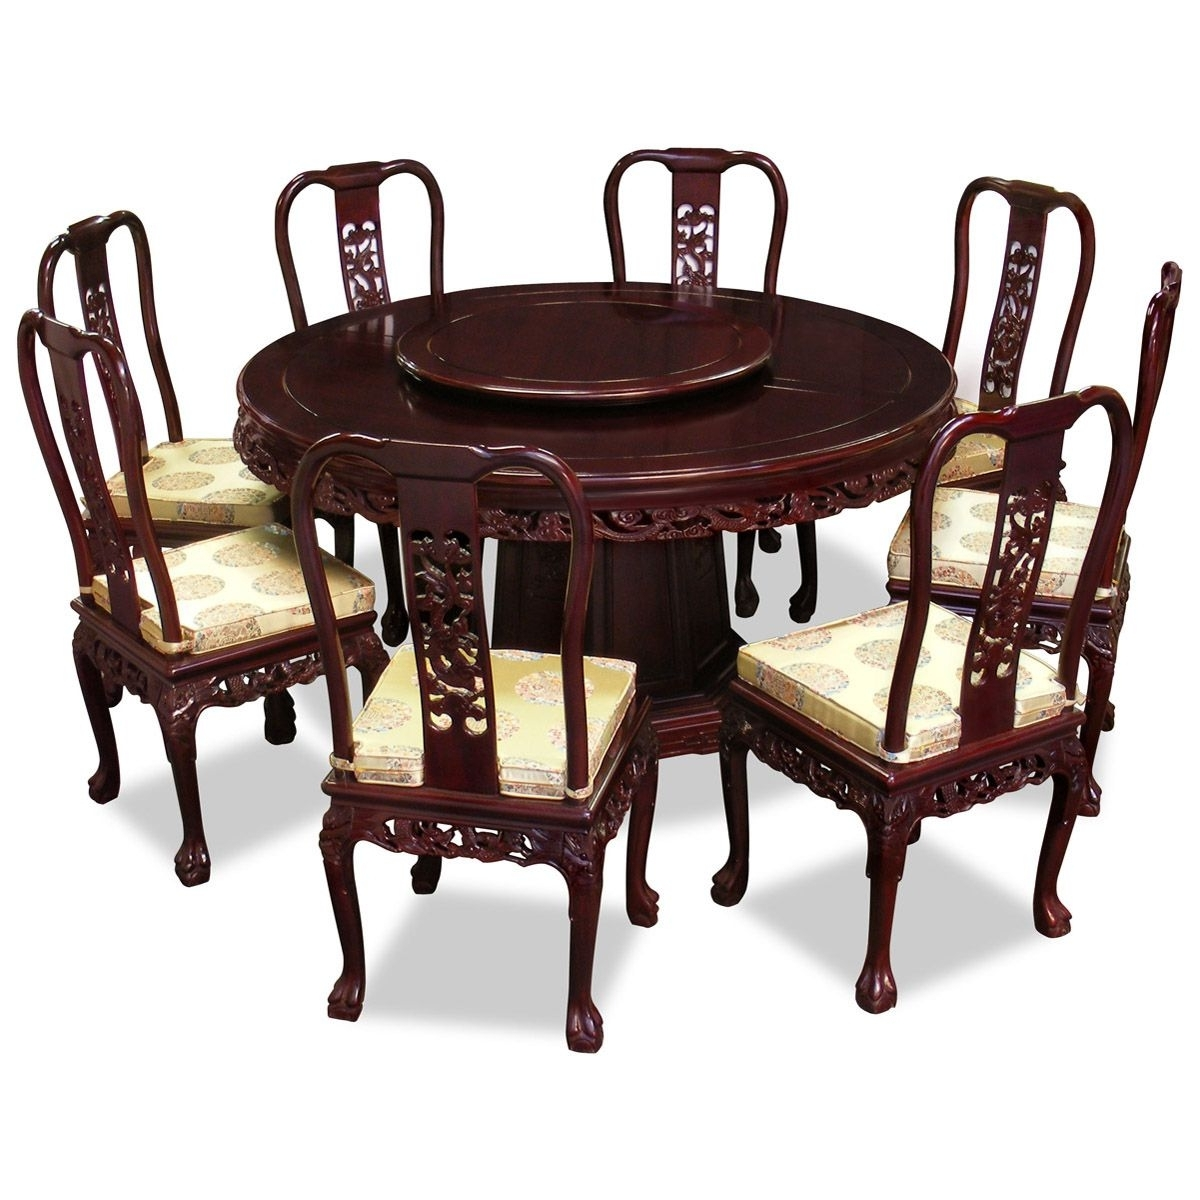 Dining Tables With 8 Chairs inside Favorite 60In Rosewood Imperial Dragon Design Round Dining Table With 8